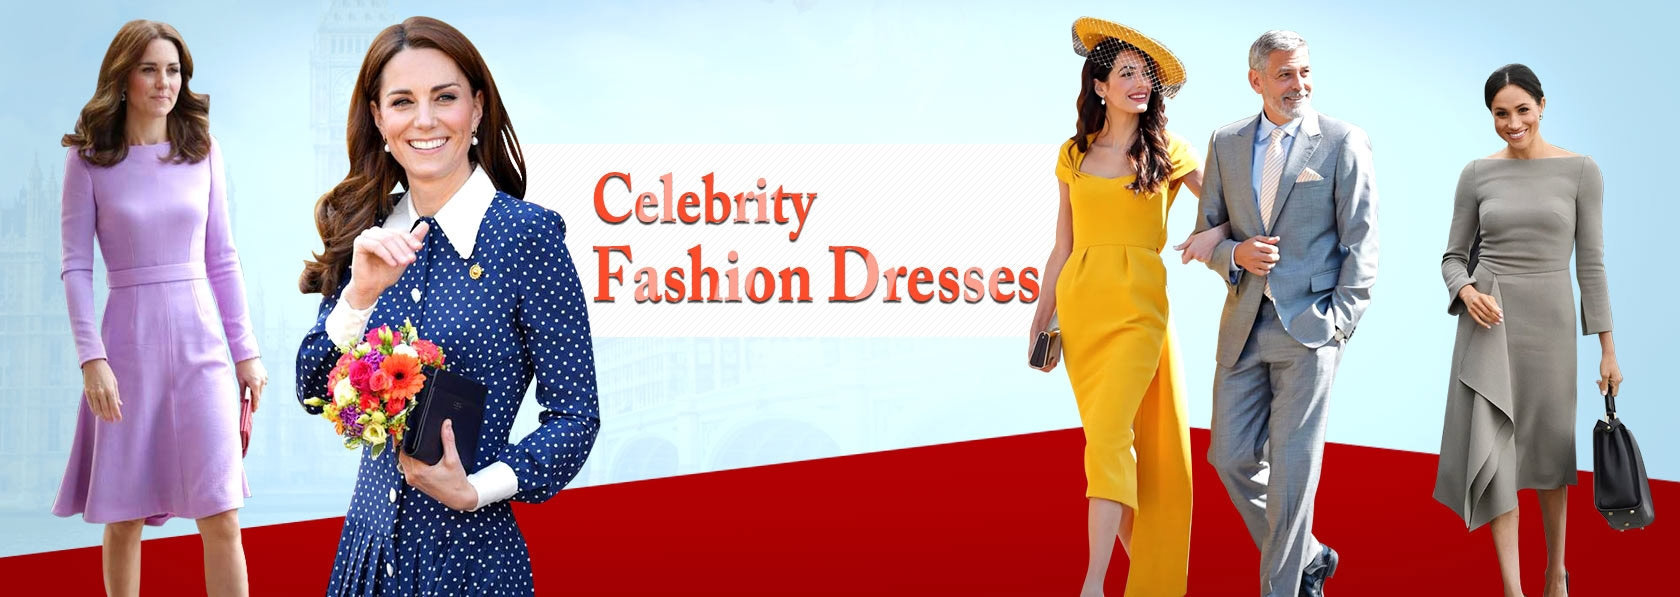 Celebrity Fashion Dresses